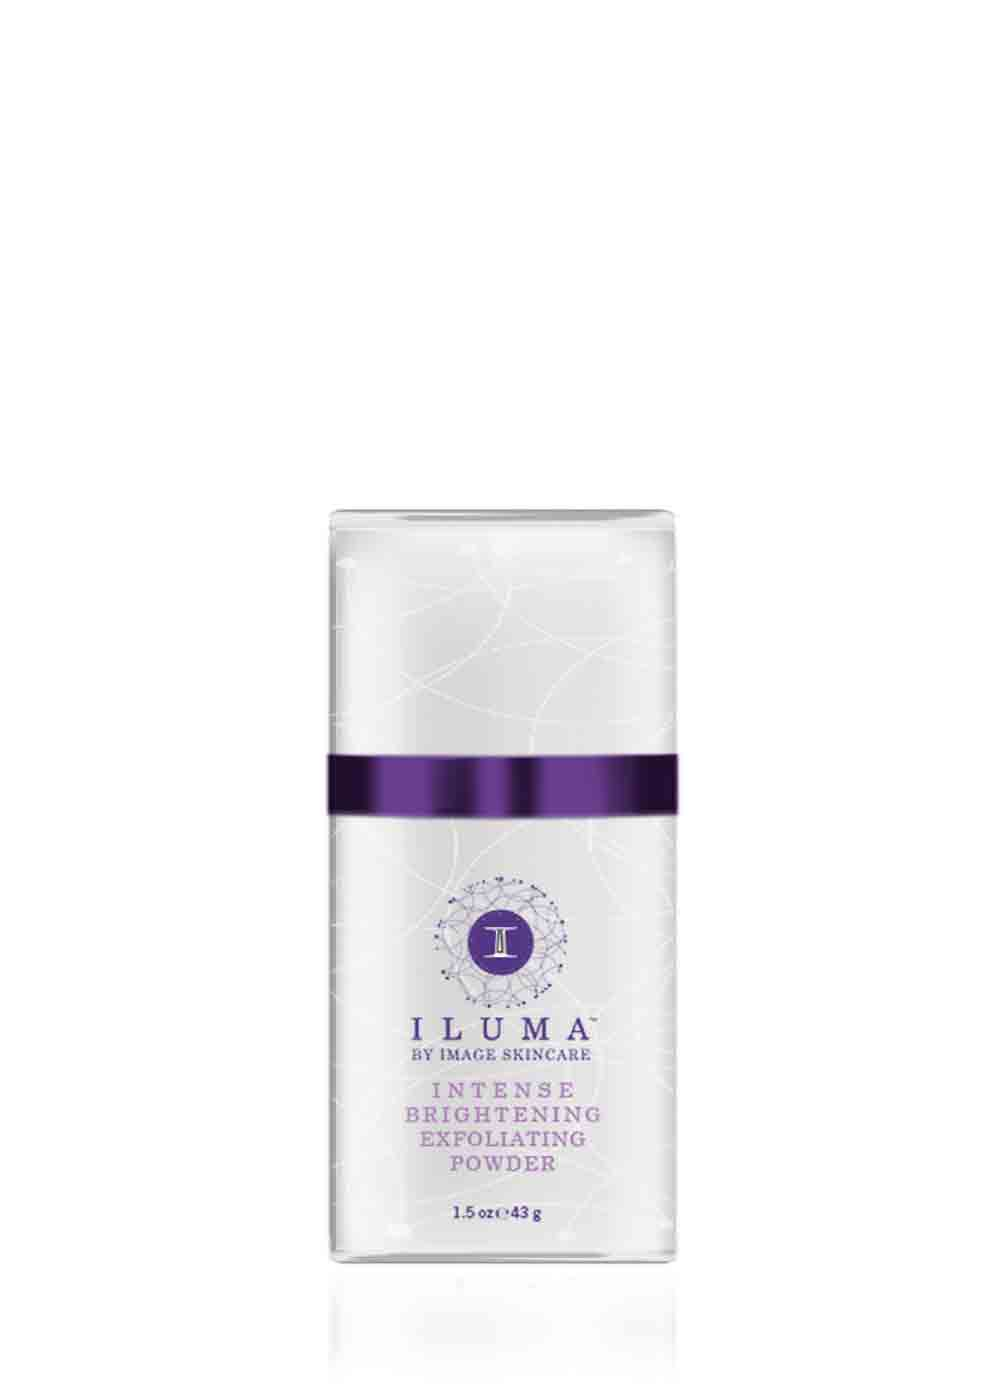 Image-ILUMA-intense-brightening-exfoliating-powder.jpg